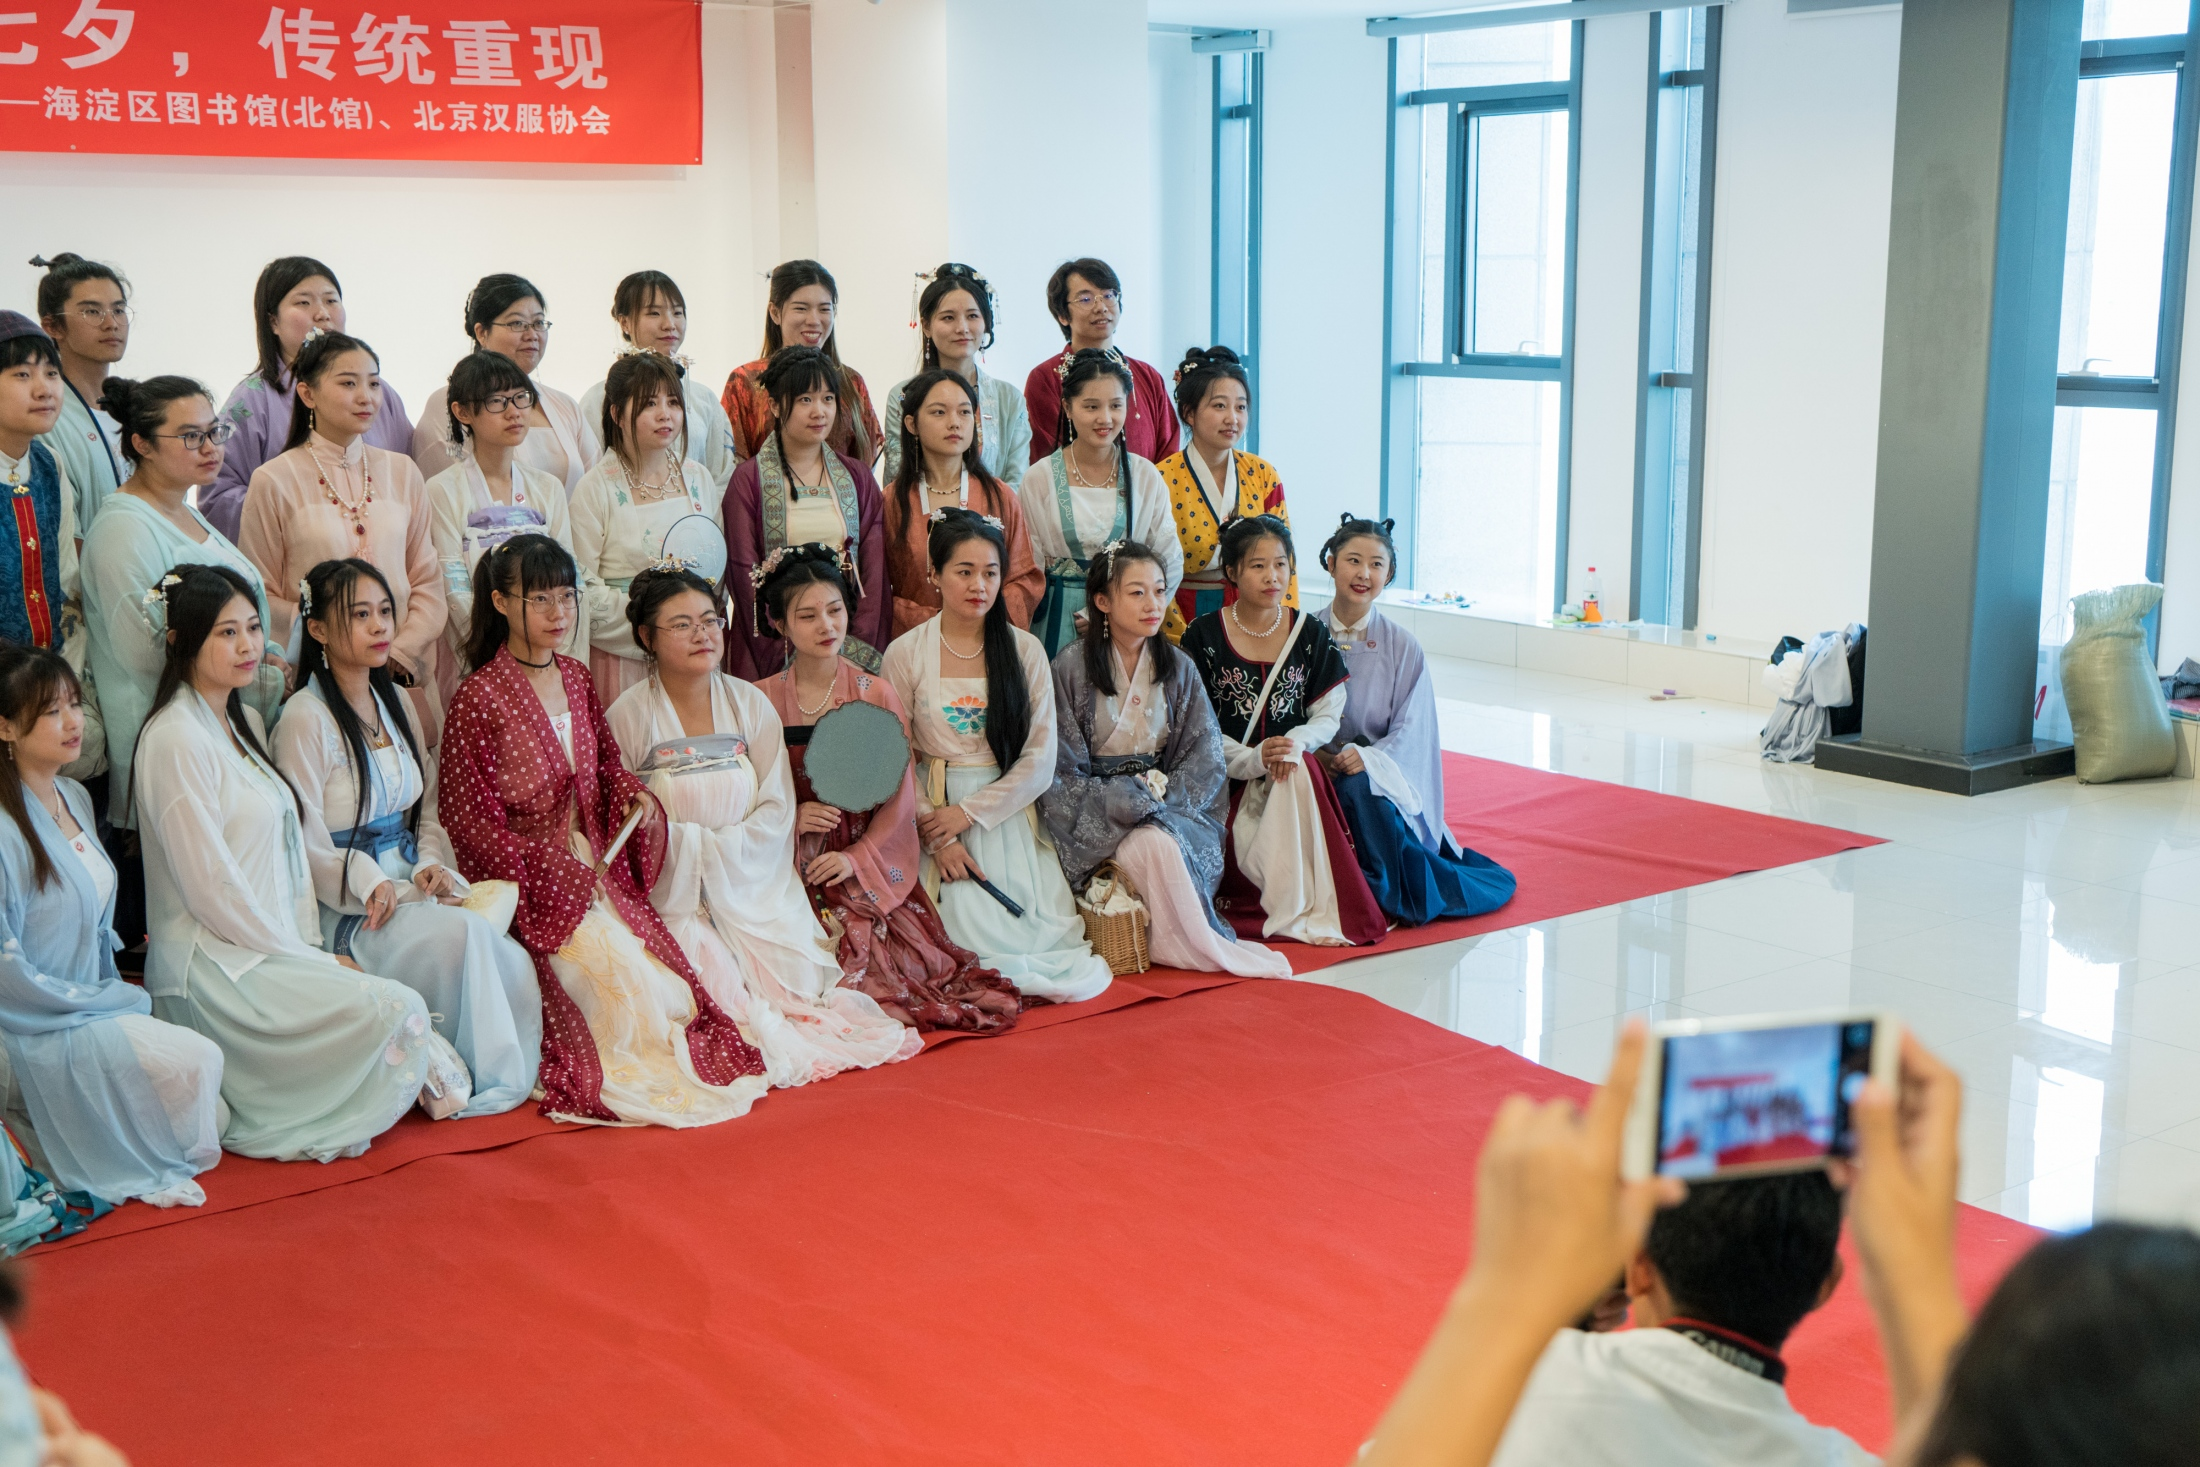 The Hanfu movement has up to a million followers, mostly women, and mostly in their teens and 20s.